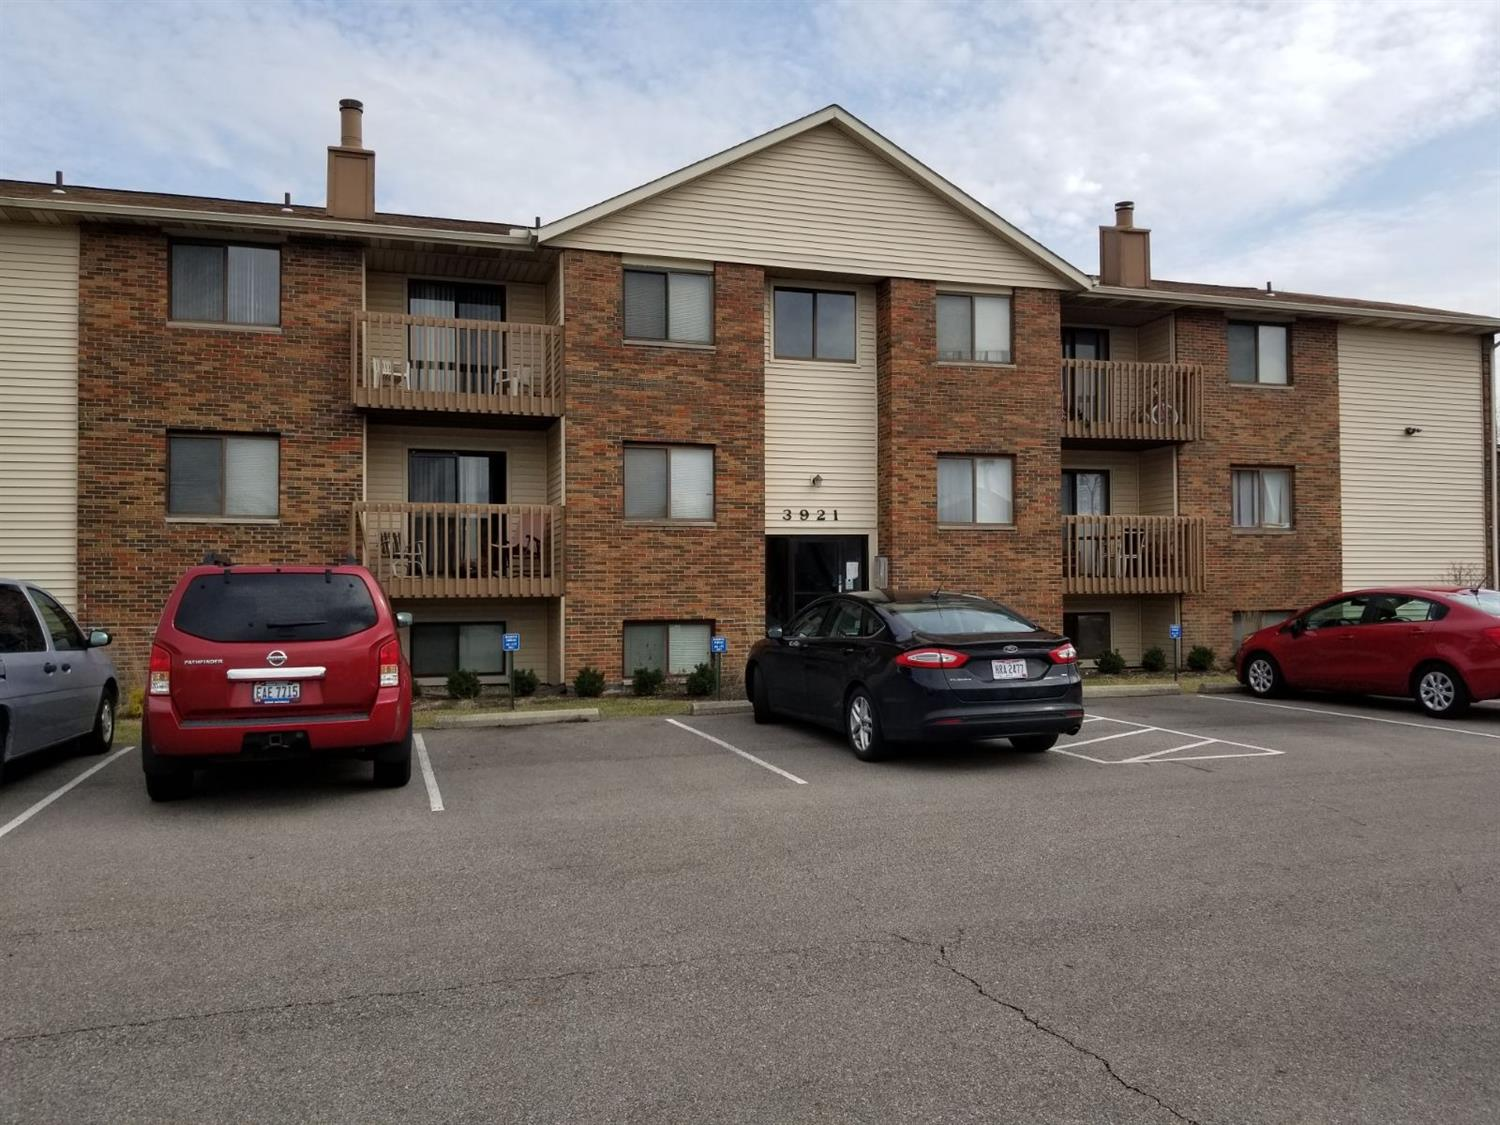 Property for sale at 3921 Mack Unit: 50, Fairfield,  Ohio 45014